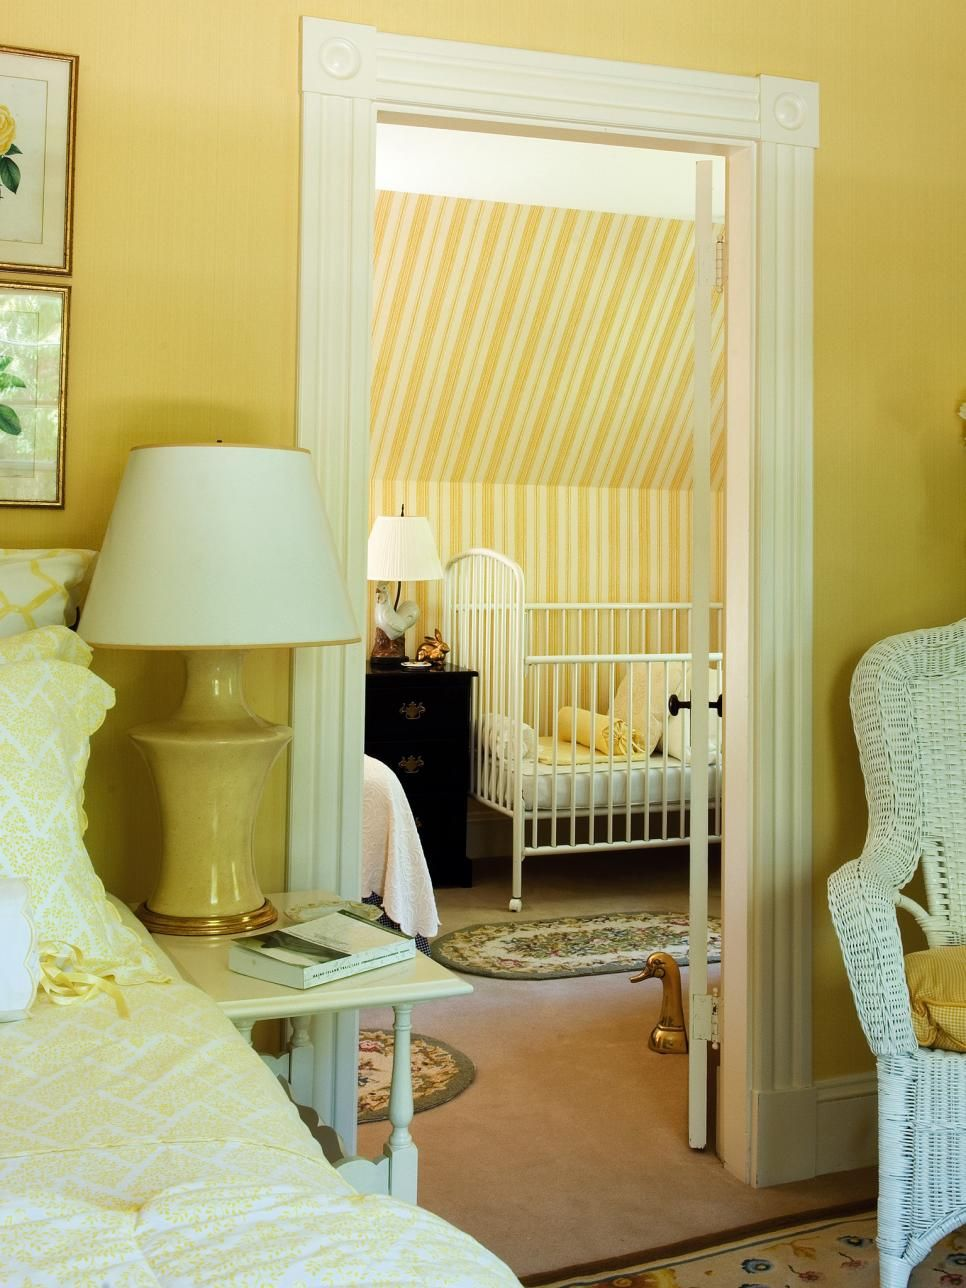 This nursery wing adjoining the master bedroom creates the